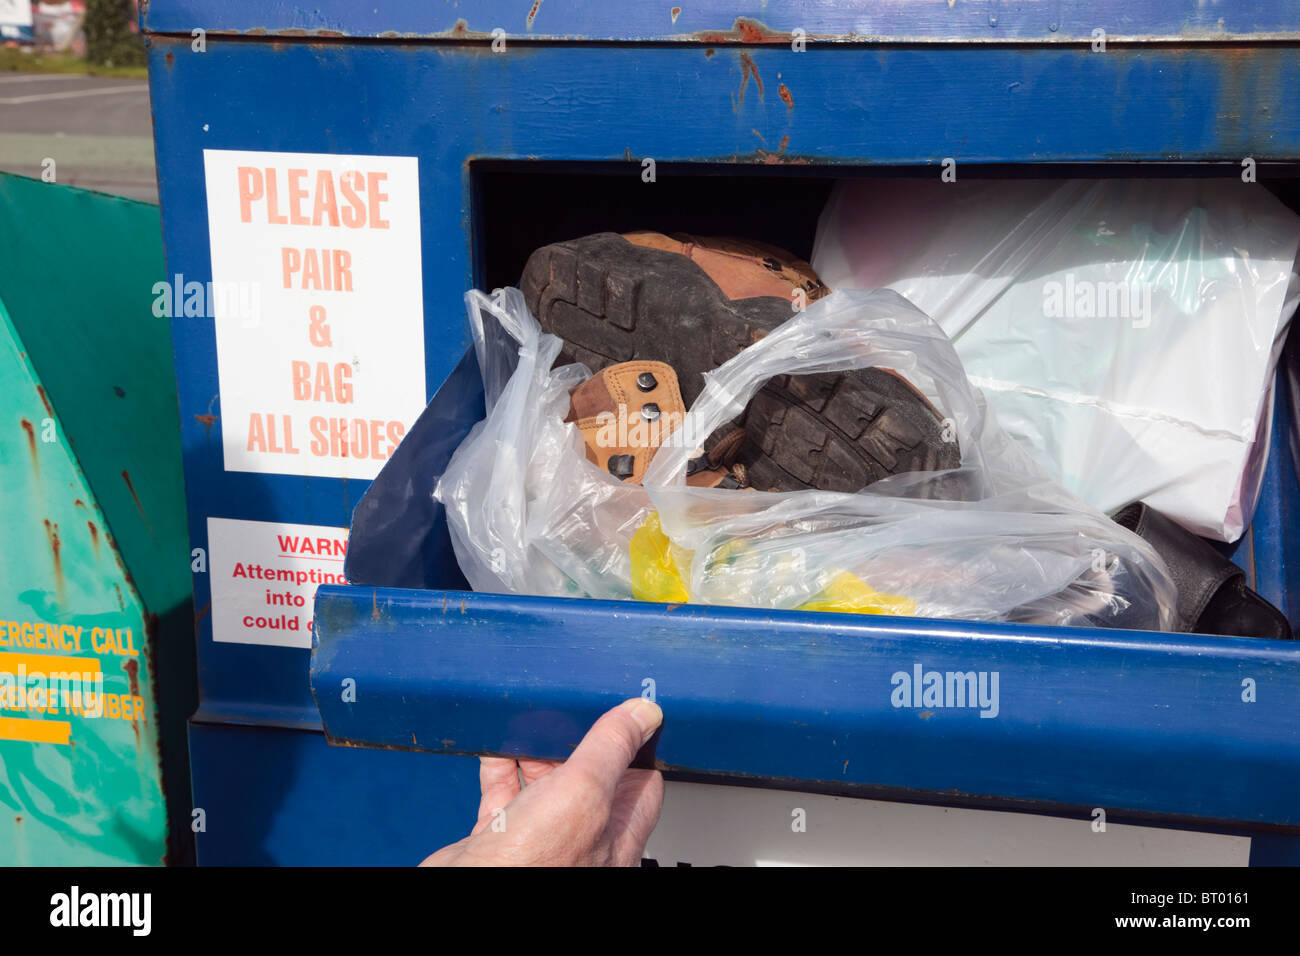 Person putting bagged old thrown out shoes into a recycling bin. UK, Britain. - Stock Image